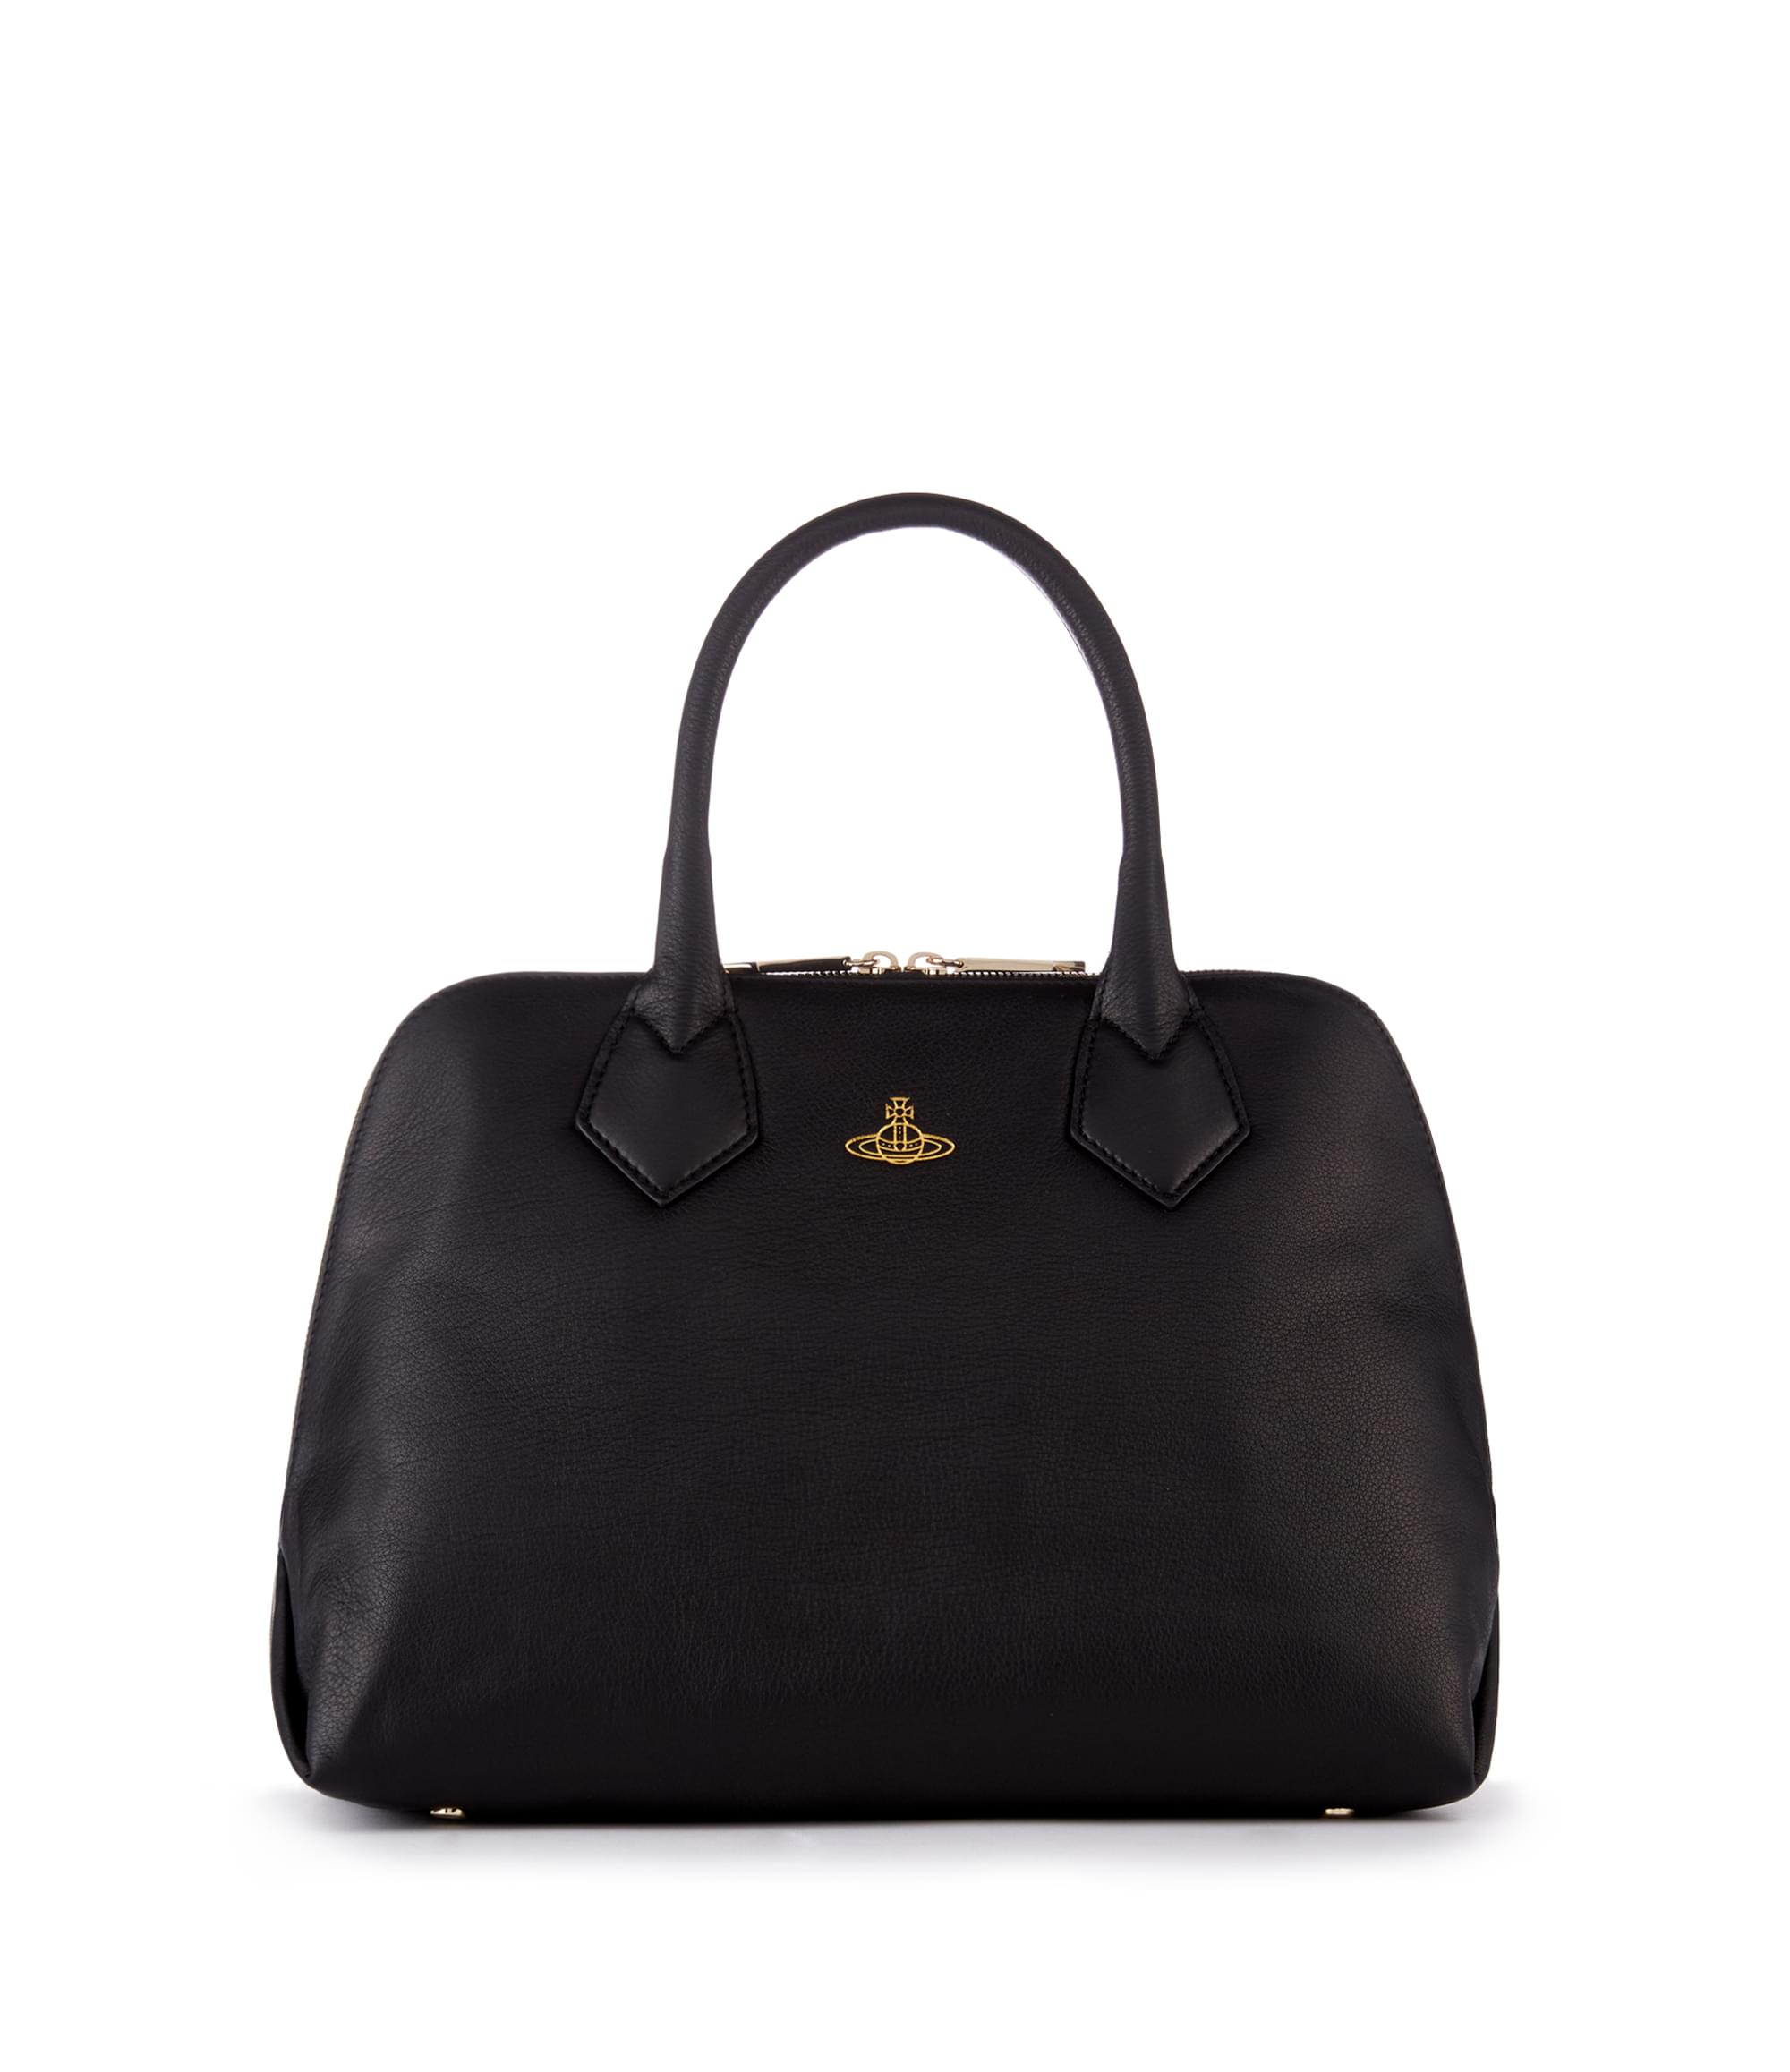 Vivienne Westwood Black Spencer Bag 13813